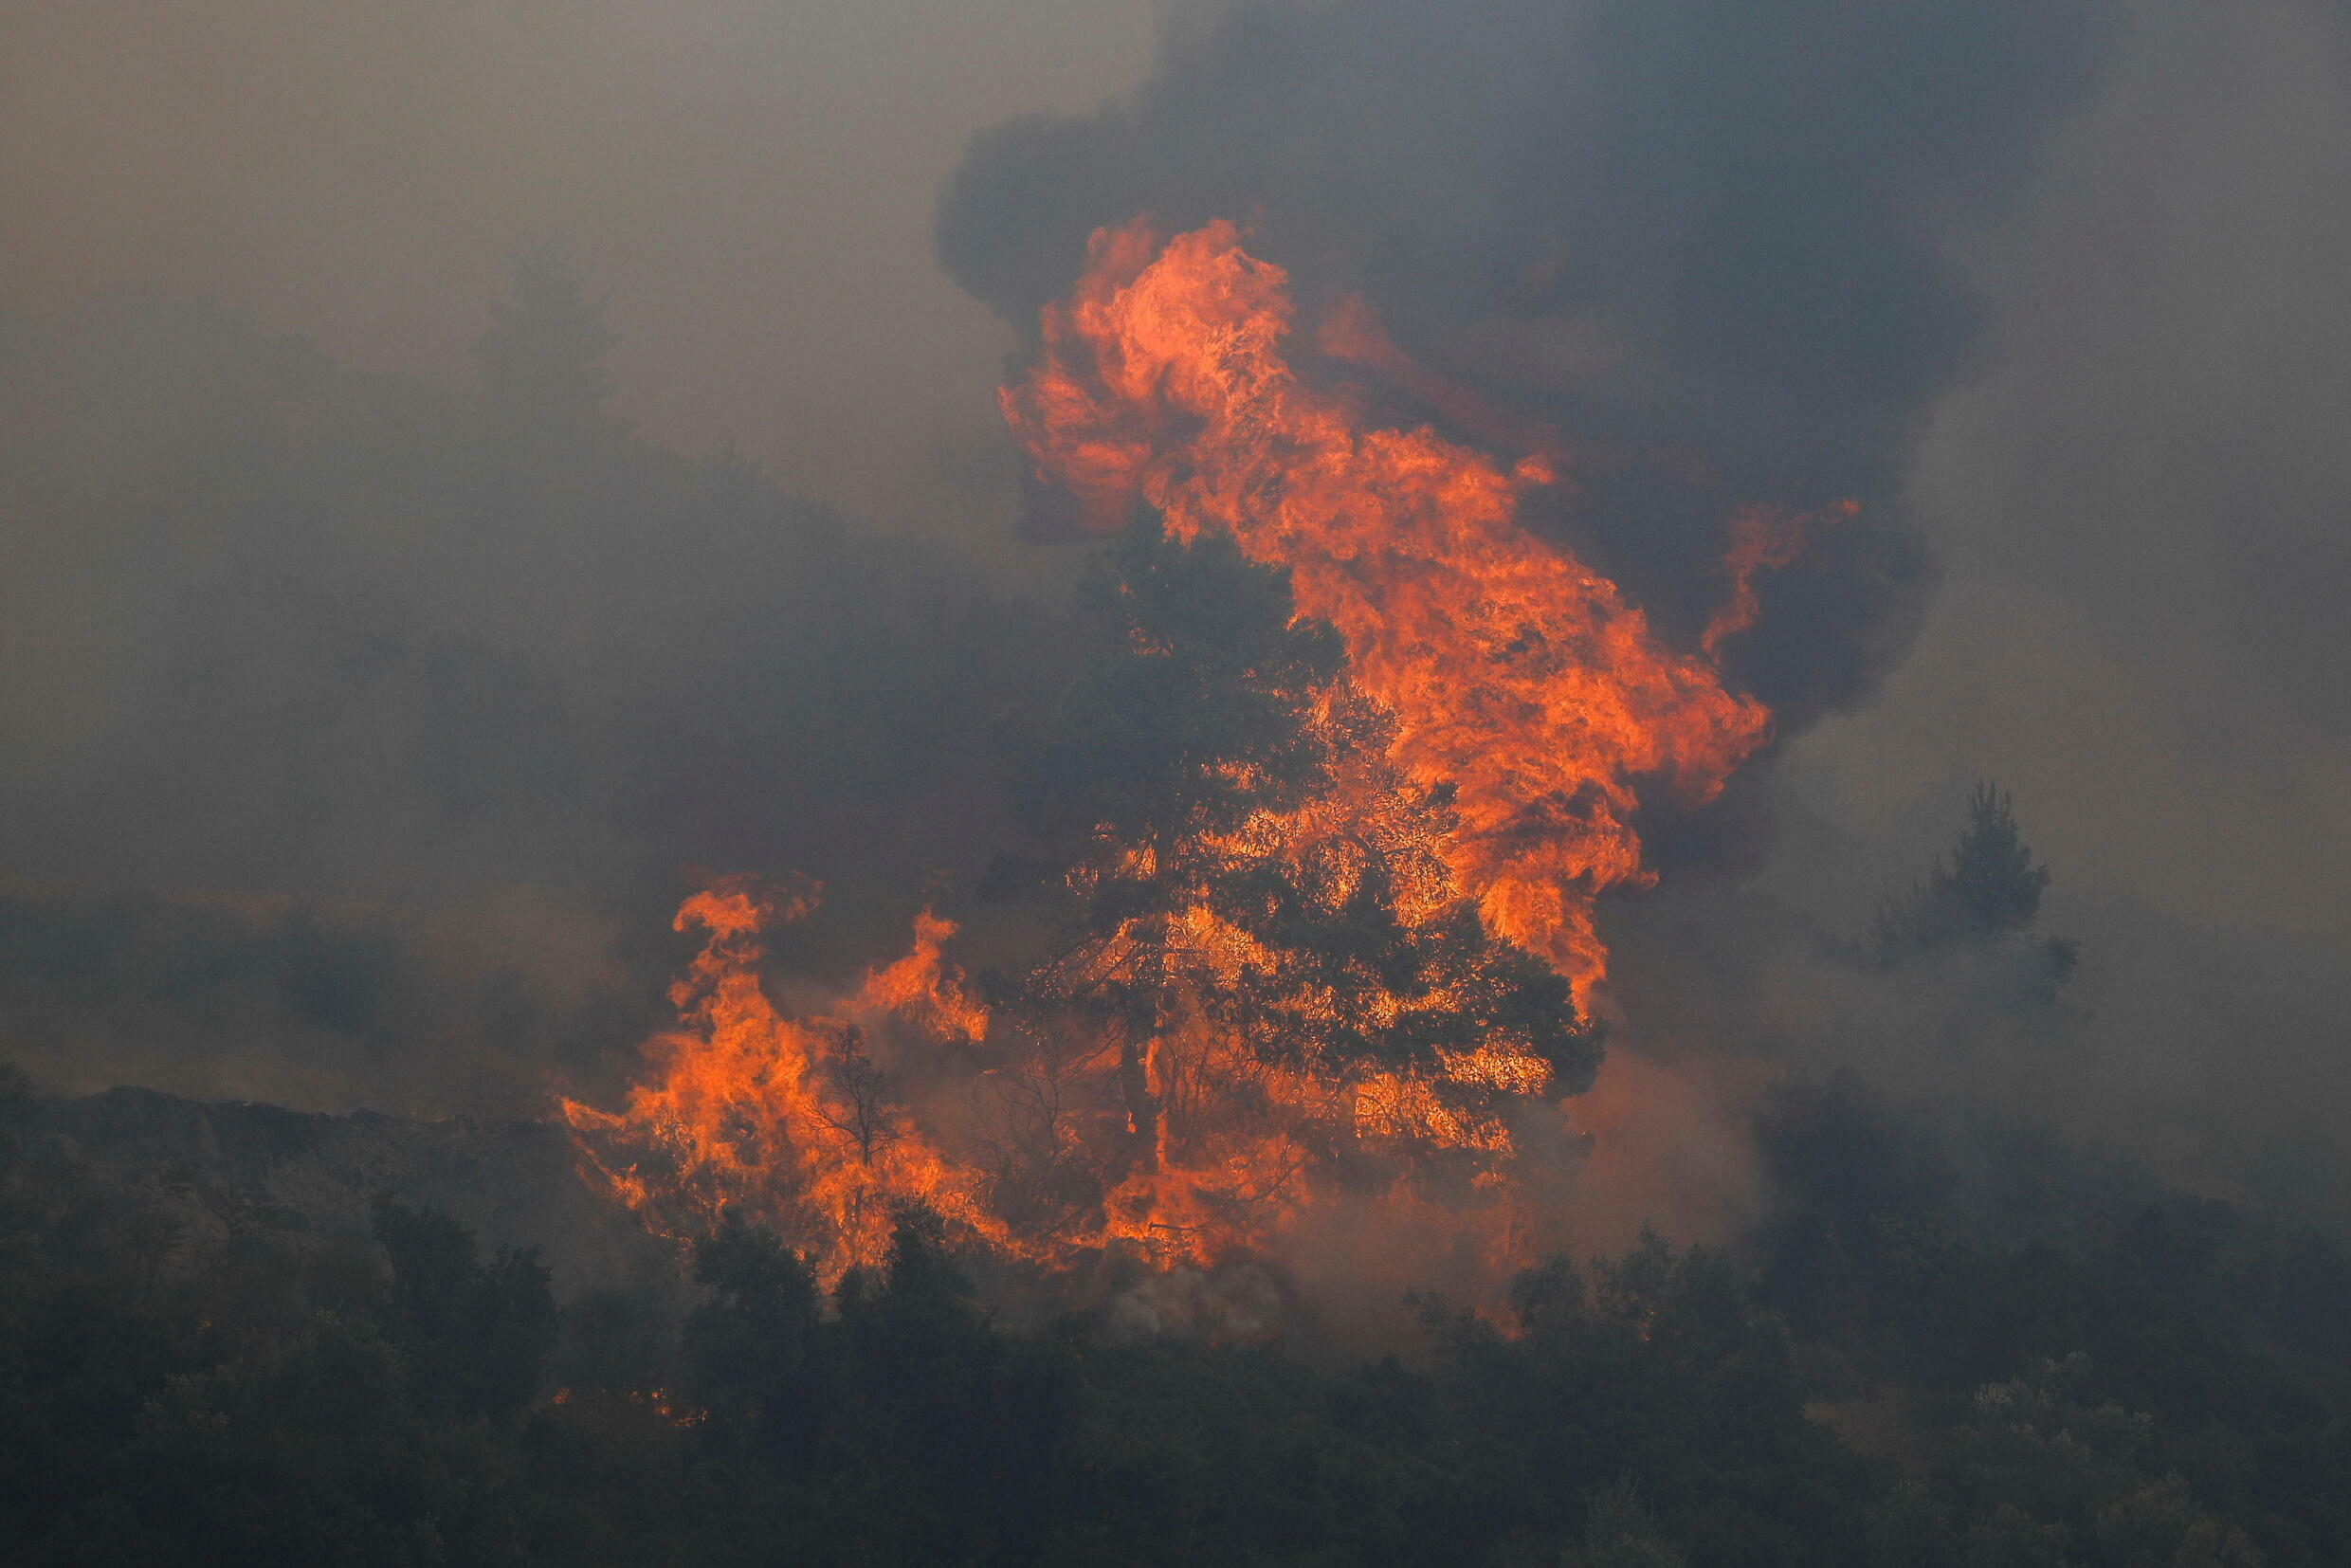 2021-08-06T090456Z_1696688571_RC2JZO9FVSA8_RTRMADP_3_EUROPE-WEATHER-GREECE-WILDFIRES